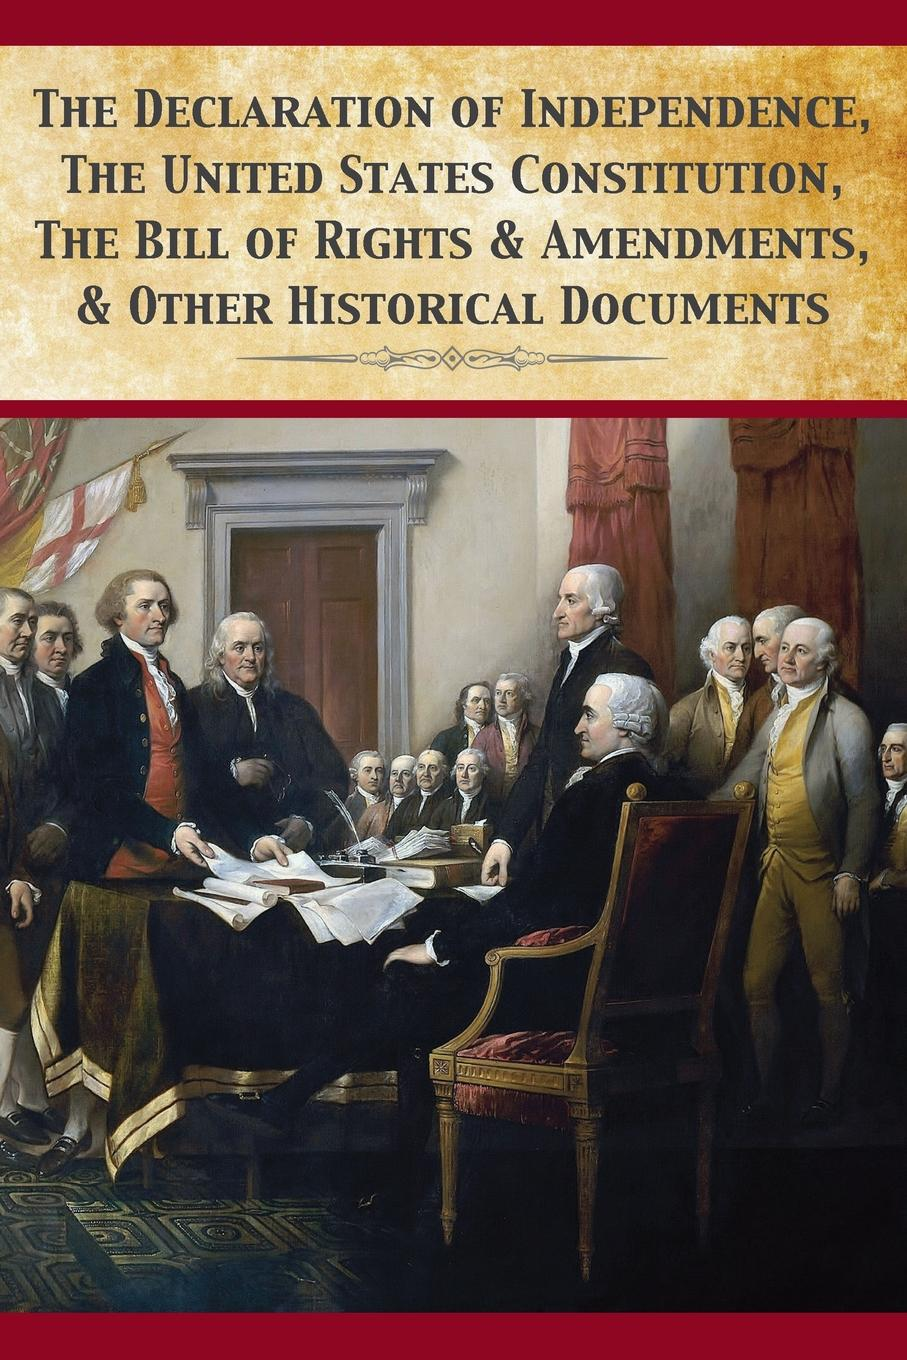 Founding Fathers The Declaration Of Independence, United States Constitution, Bill Of Rights . Amendments united nations the universal declaration of human rights